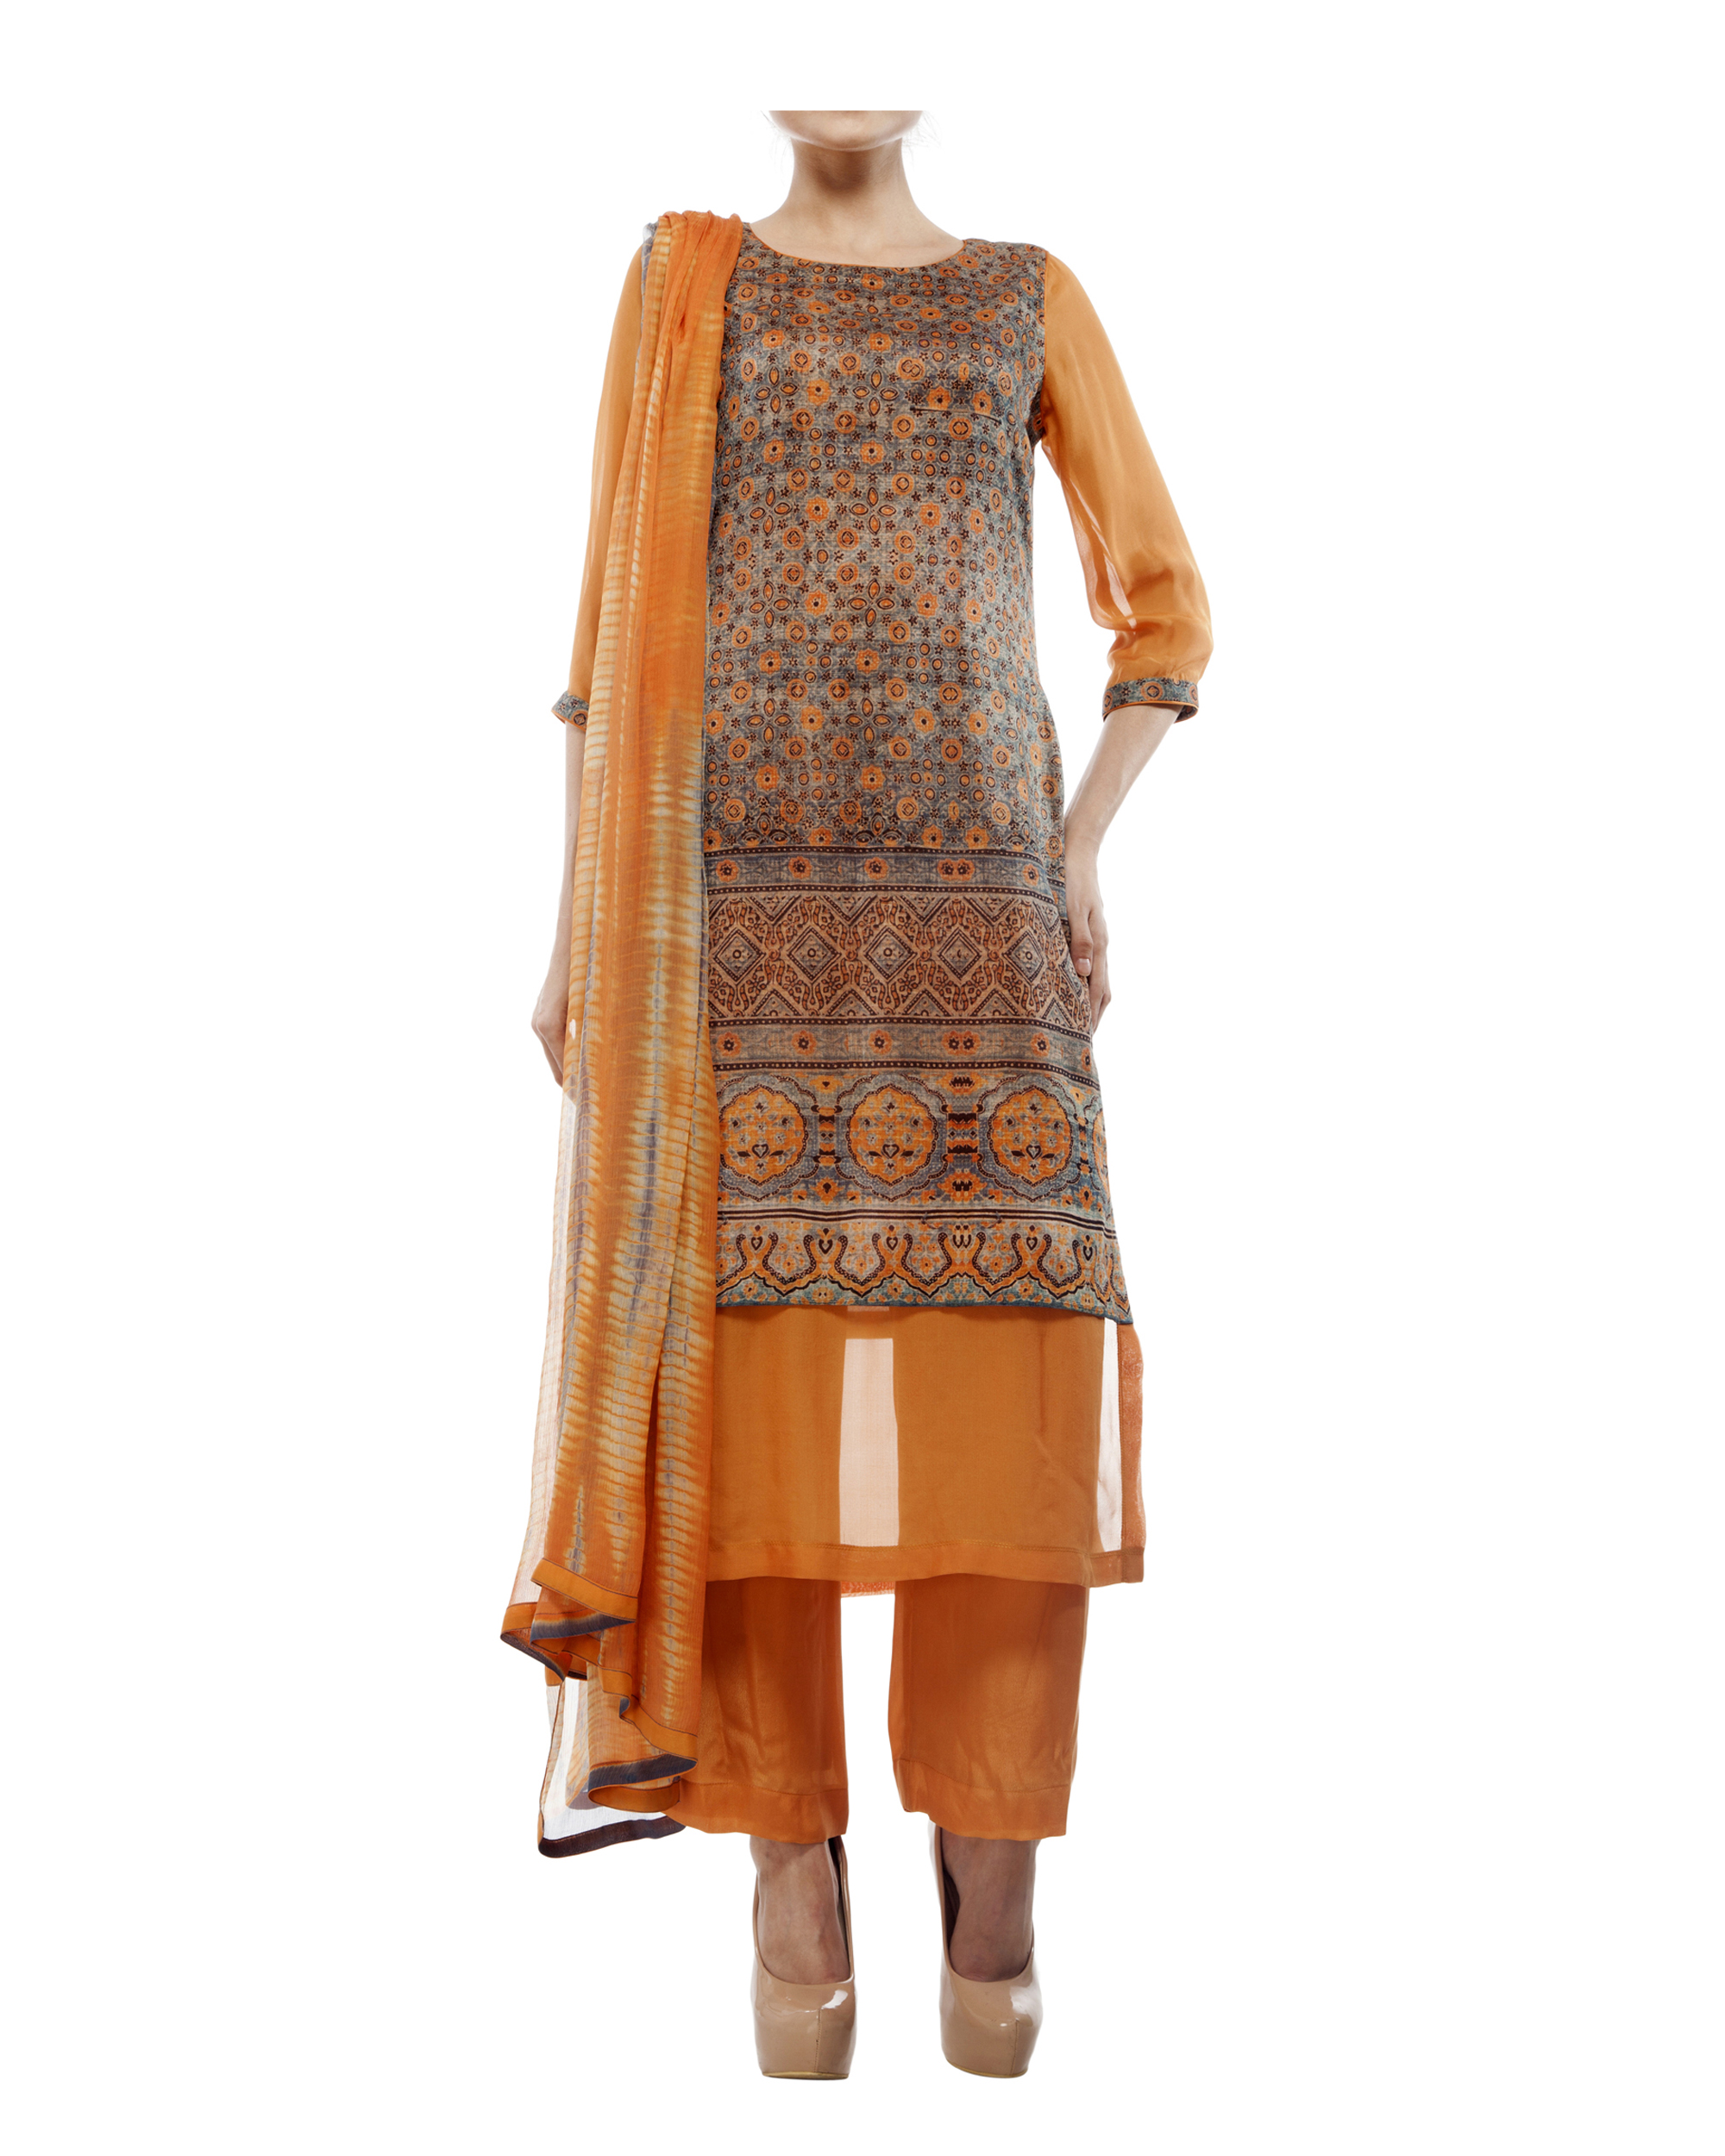 Ajrakh print round neck  kurta with chiffon layer, comes with a palazzo  tie & dye dupatta